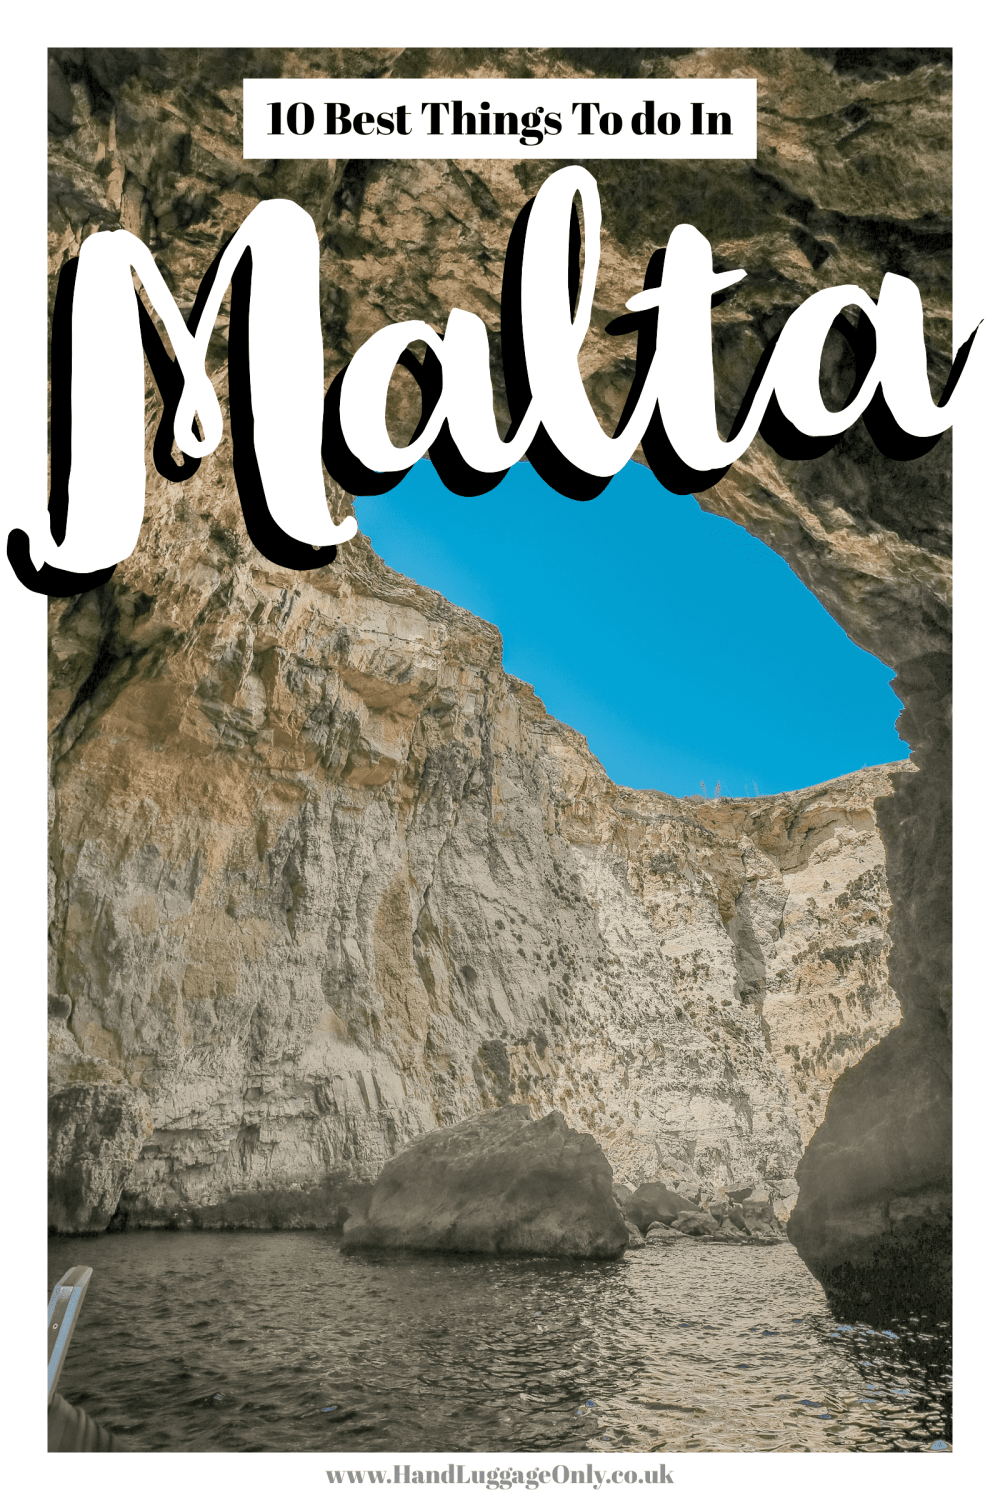 Best things to do in Malta